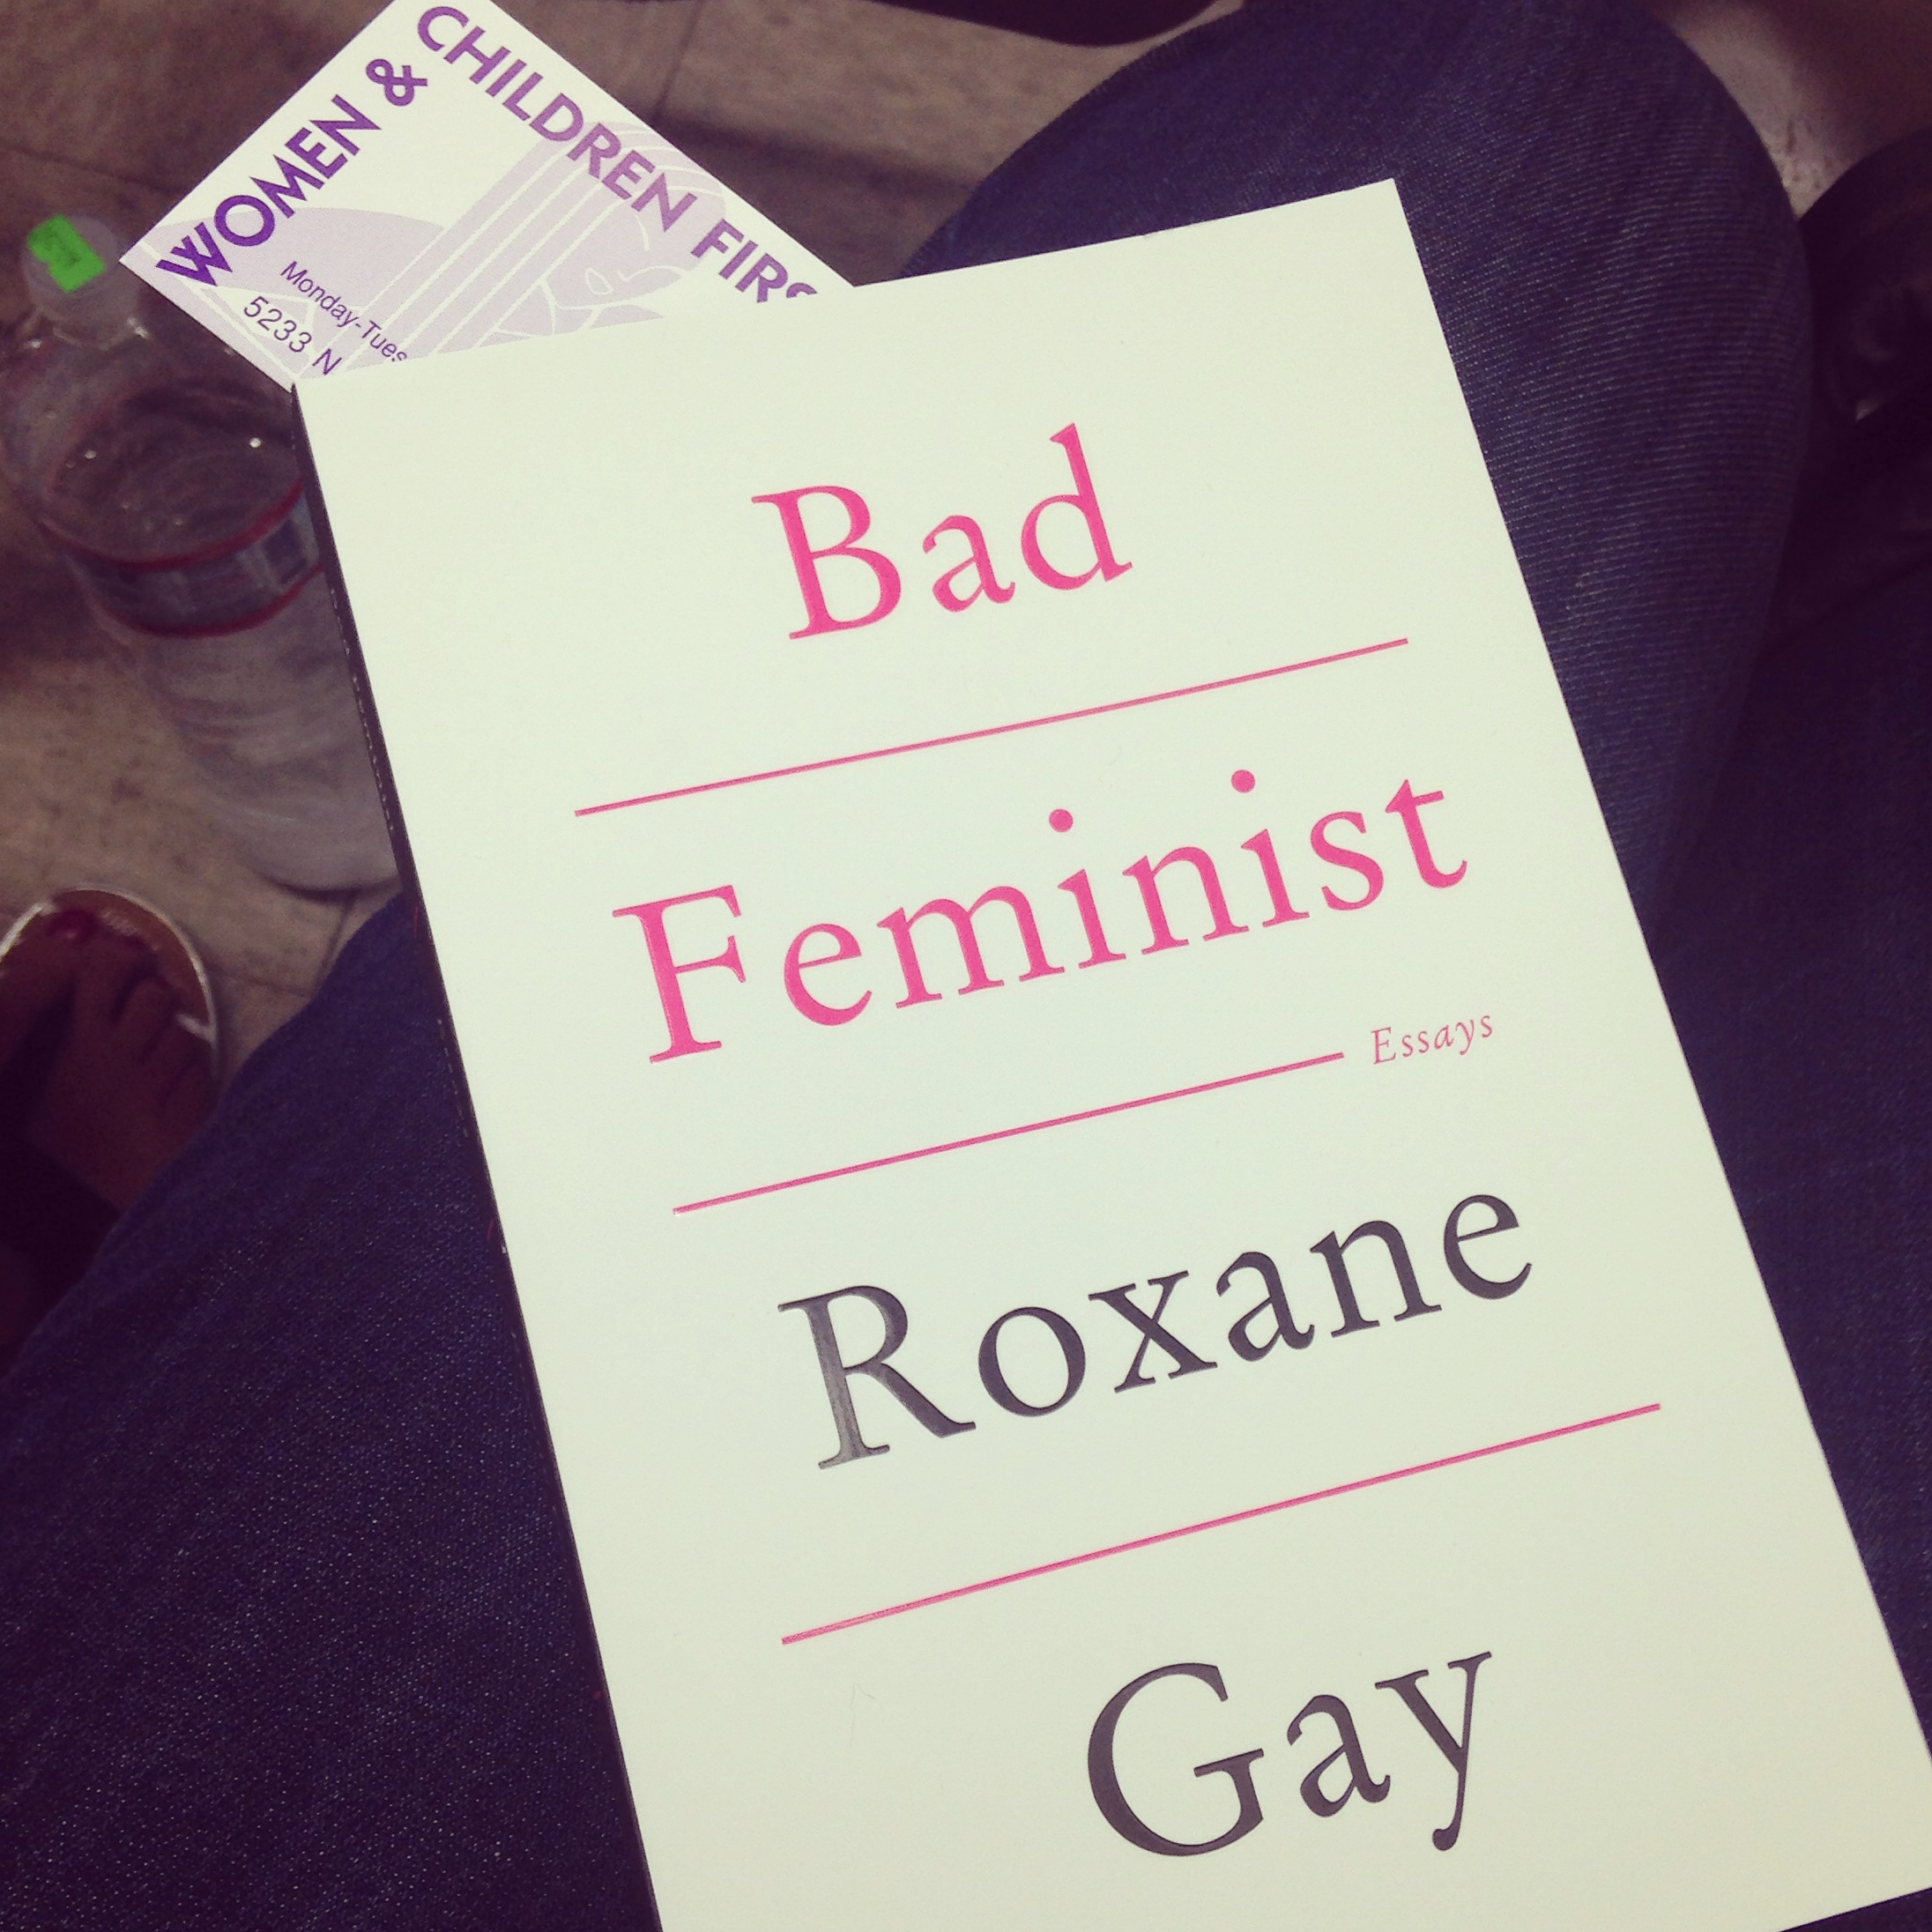 roxane gay on bad feminism beyonc eacute blogging the addison bad feminist